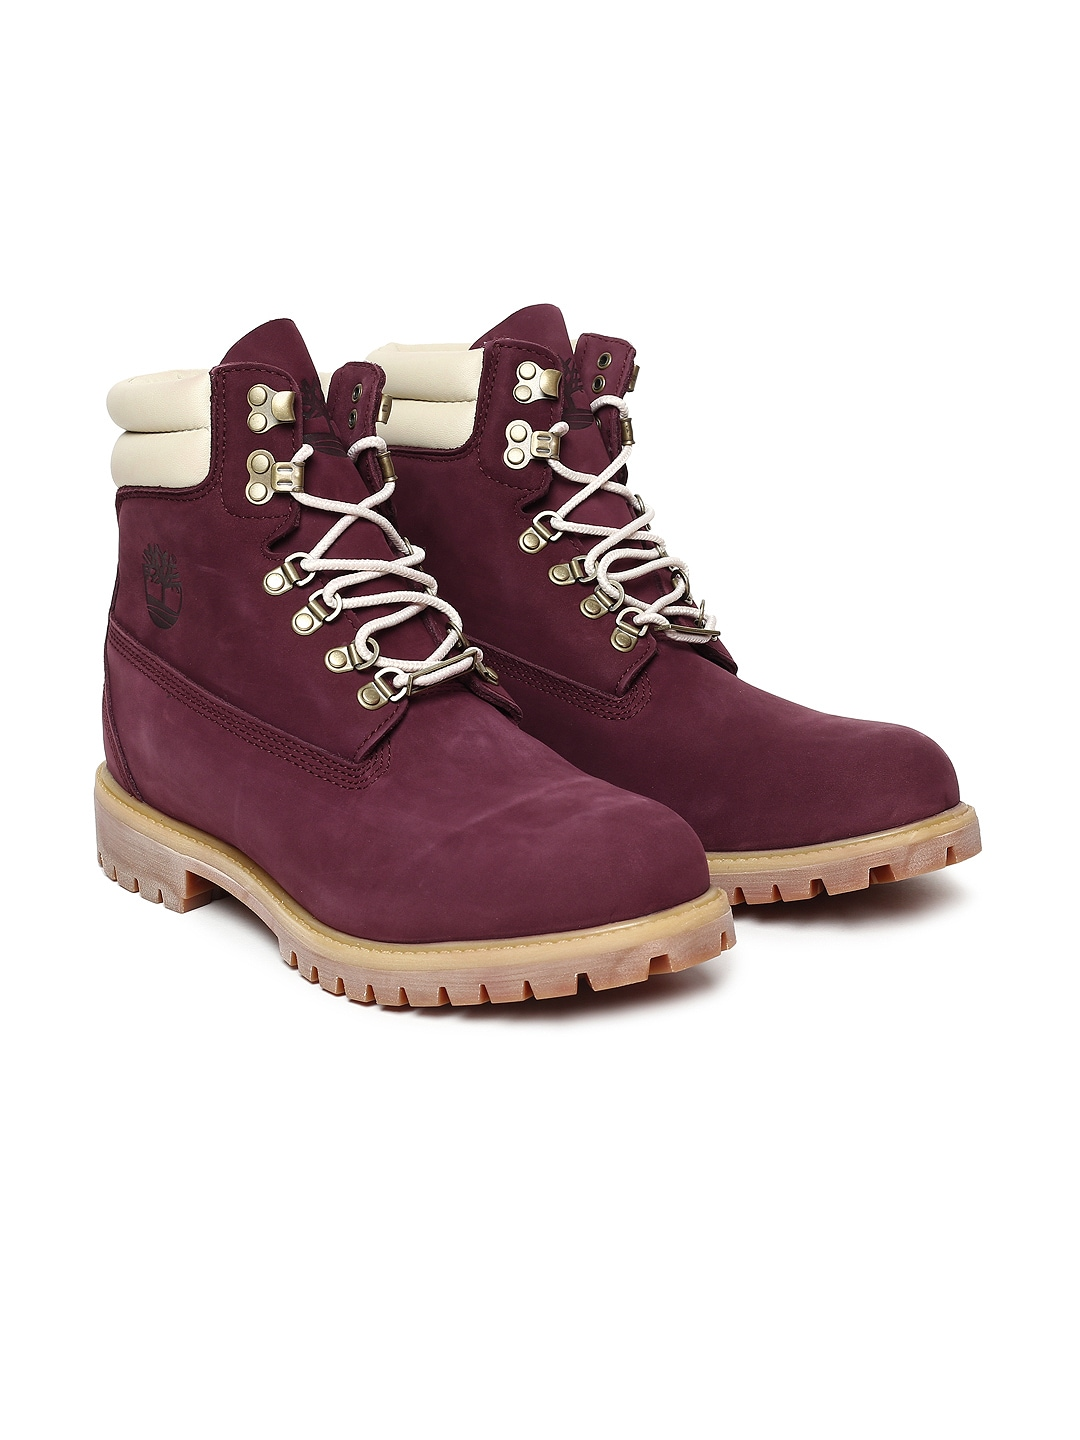 0f163cb617a Men s Timberland Shoes - Buy Timberland Shoes for Men Online in India